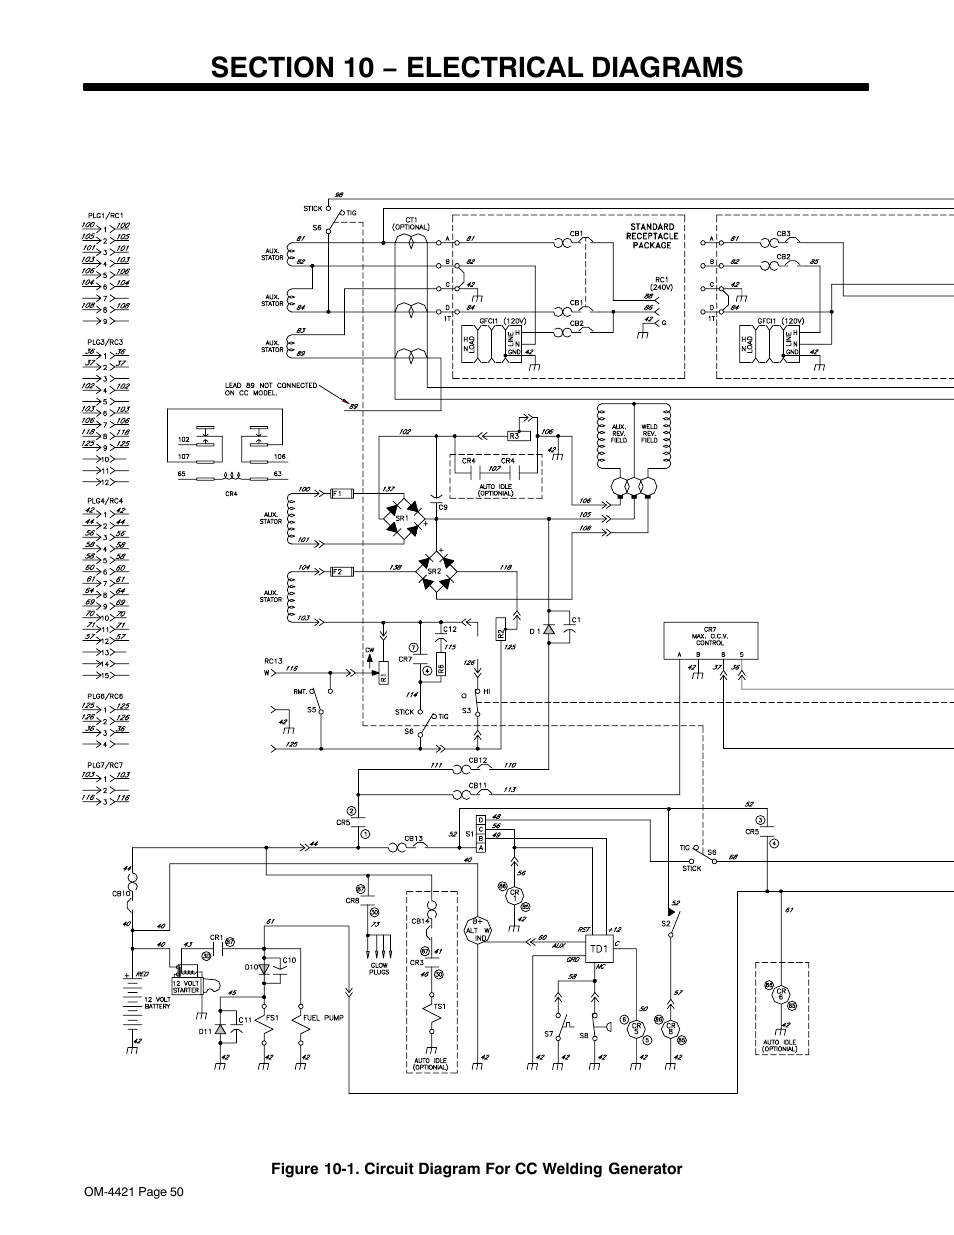 medium resolution of section 10 electrical diagrams miller electric big blue 500 x user manual page 56 92